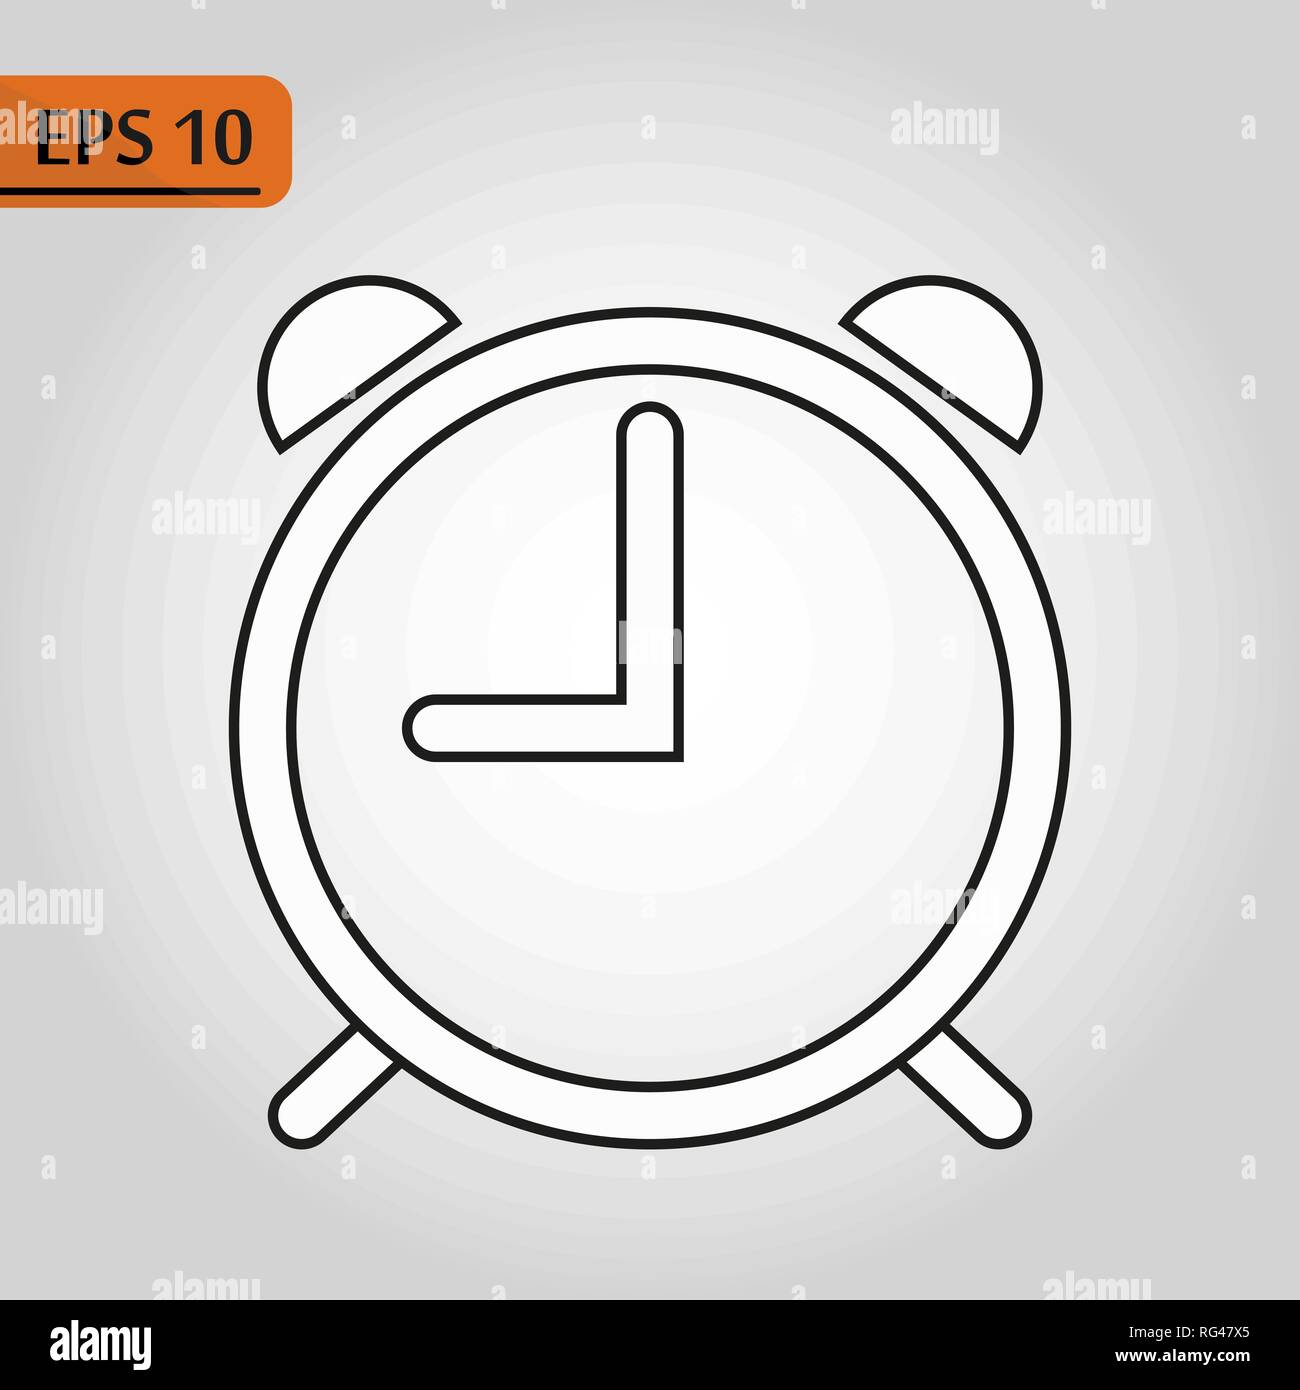 alarm clock icon isolated on white background, simple line outline style,  alarm clock ringing icon modern design ep10